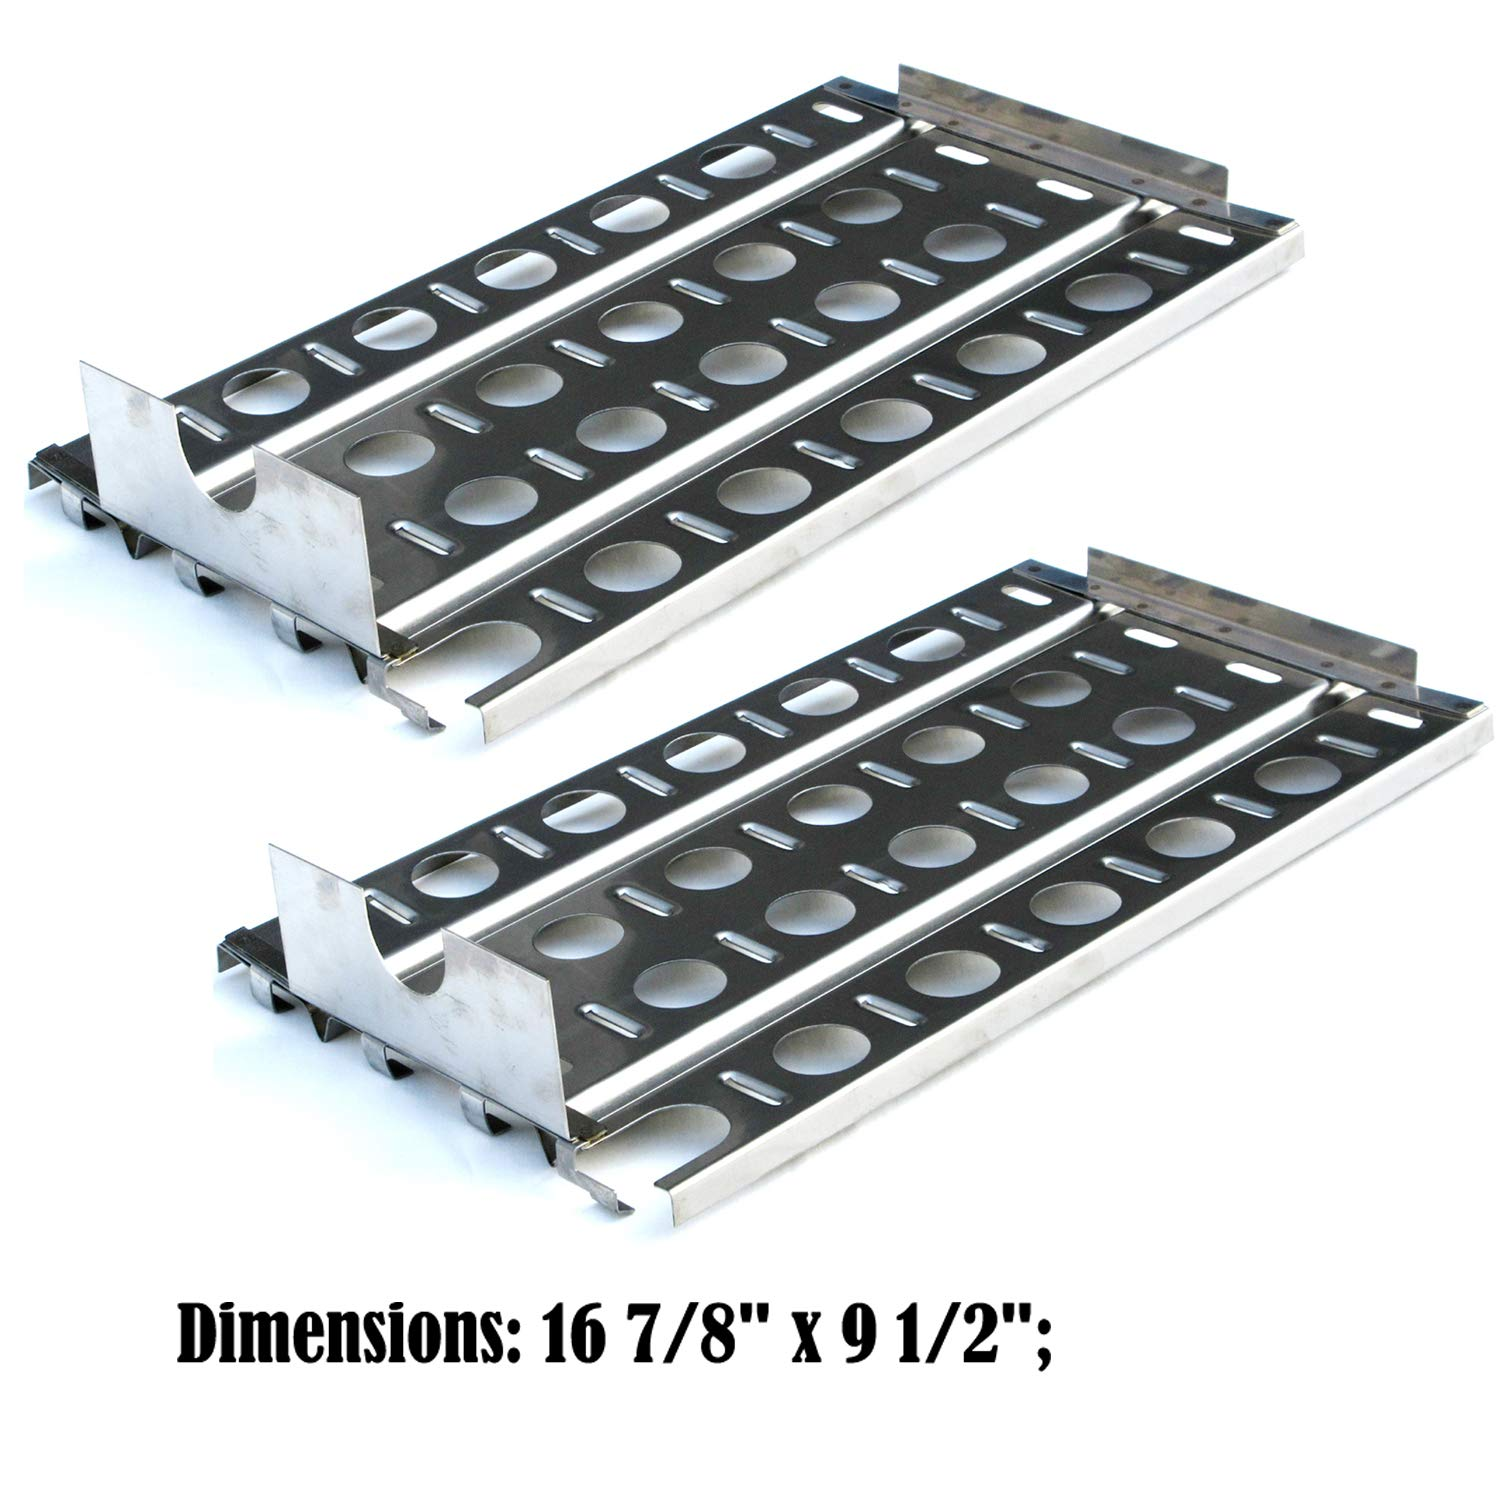 Direct store Parts DP114 (2-pack) Stainless Steel Heat plates Replacement Lynx Gas Grill Models (2) by Direct store (Image #2)